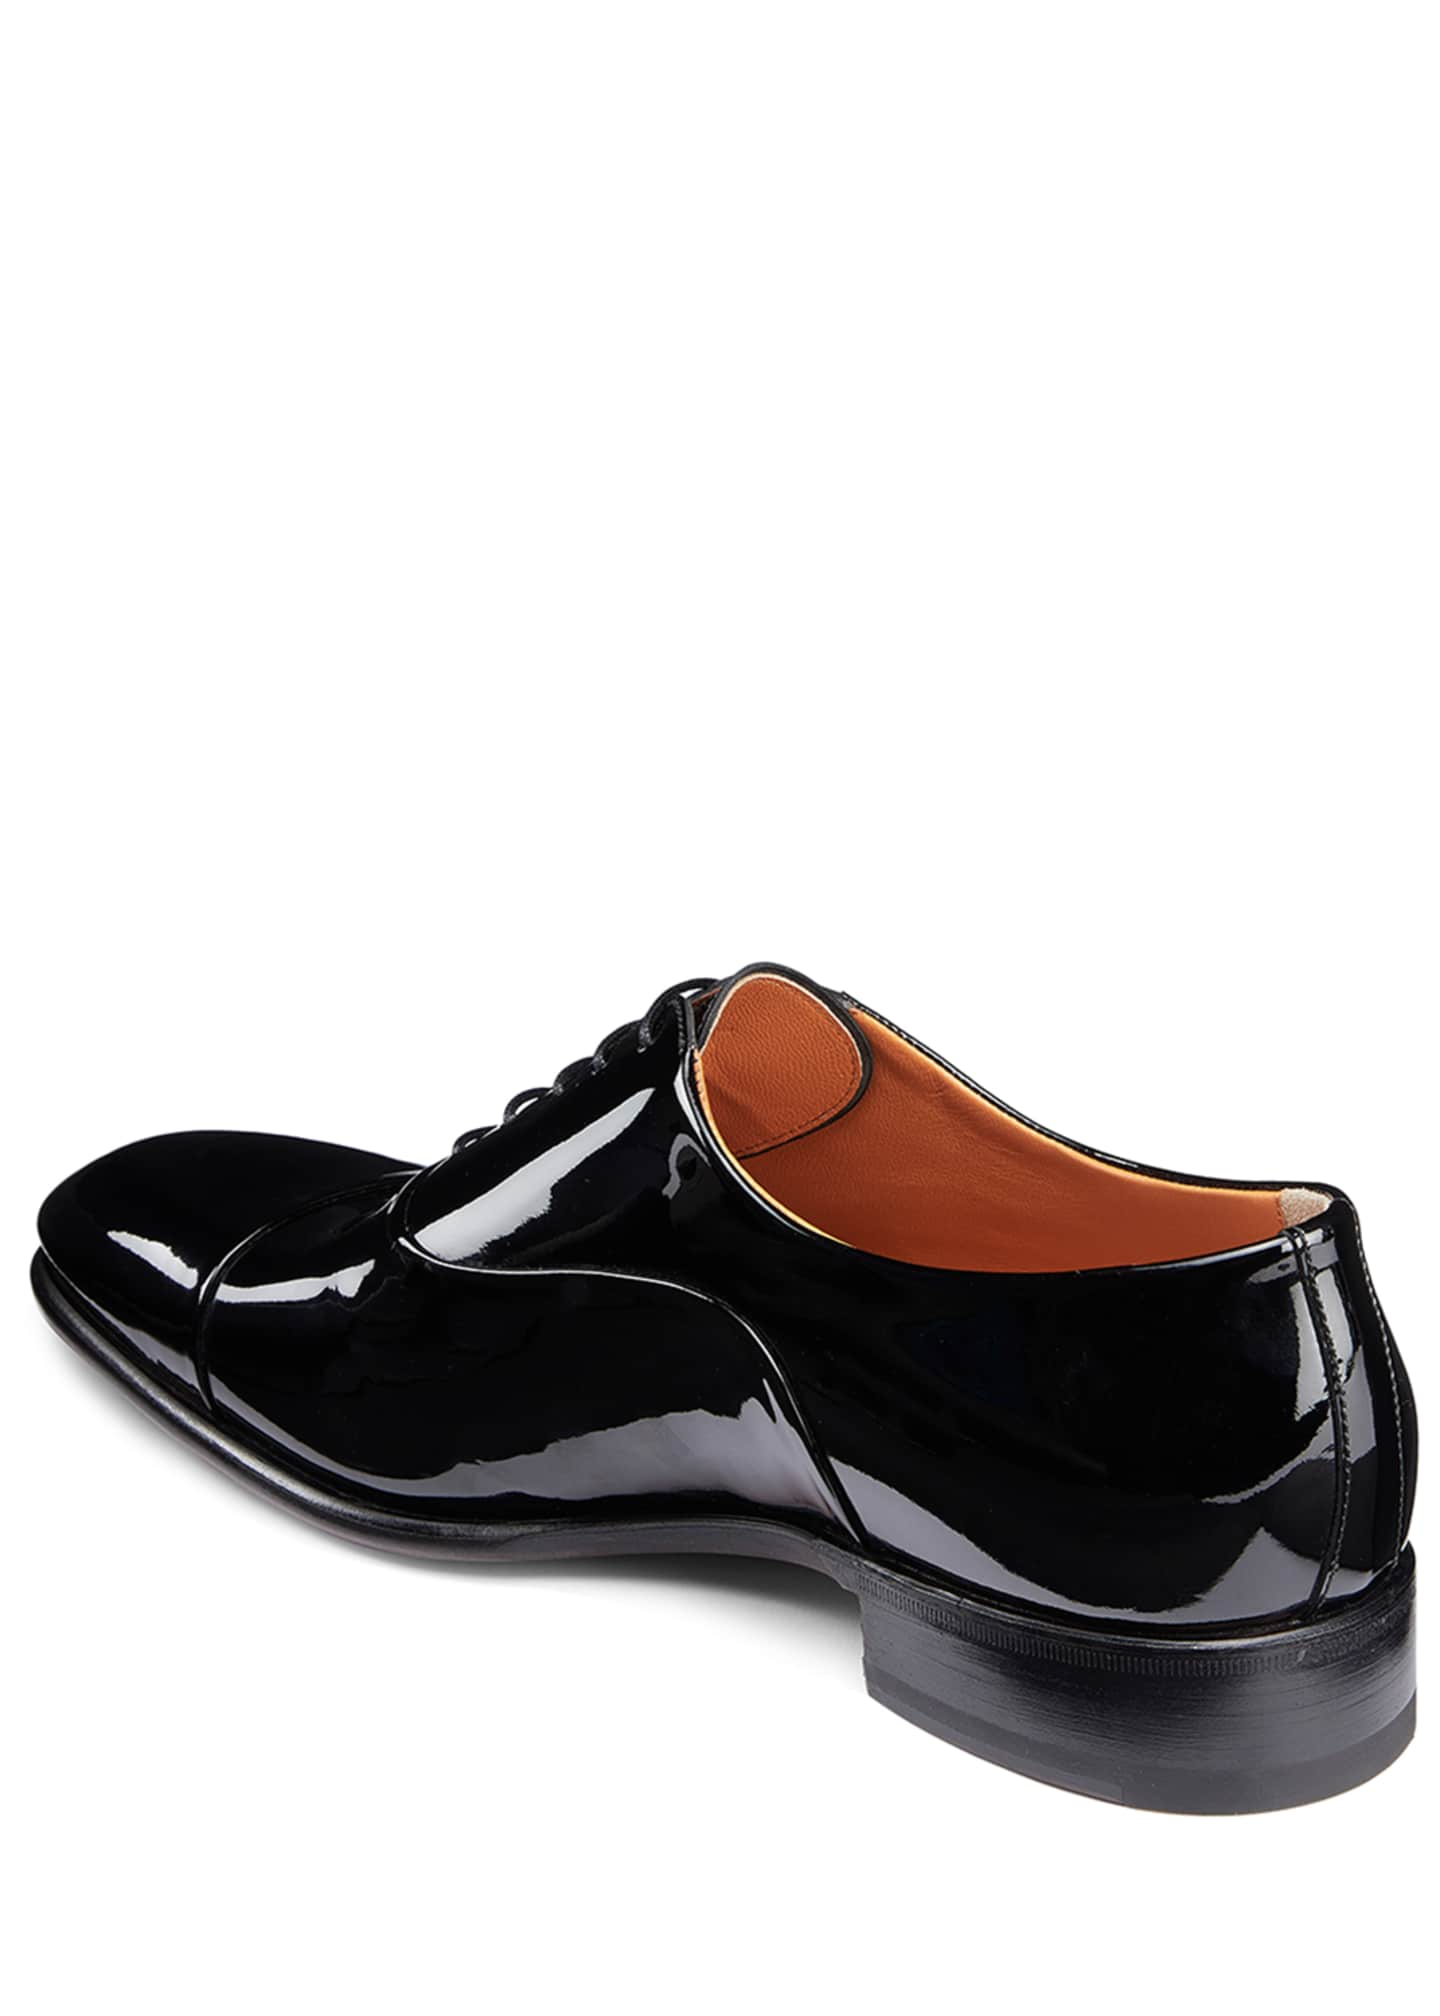 Image 4 of 5: Men's Isaac Patent Leather Lace-Up Shoes